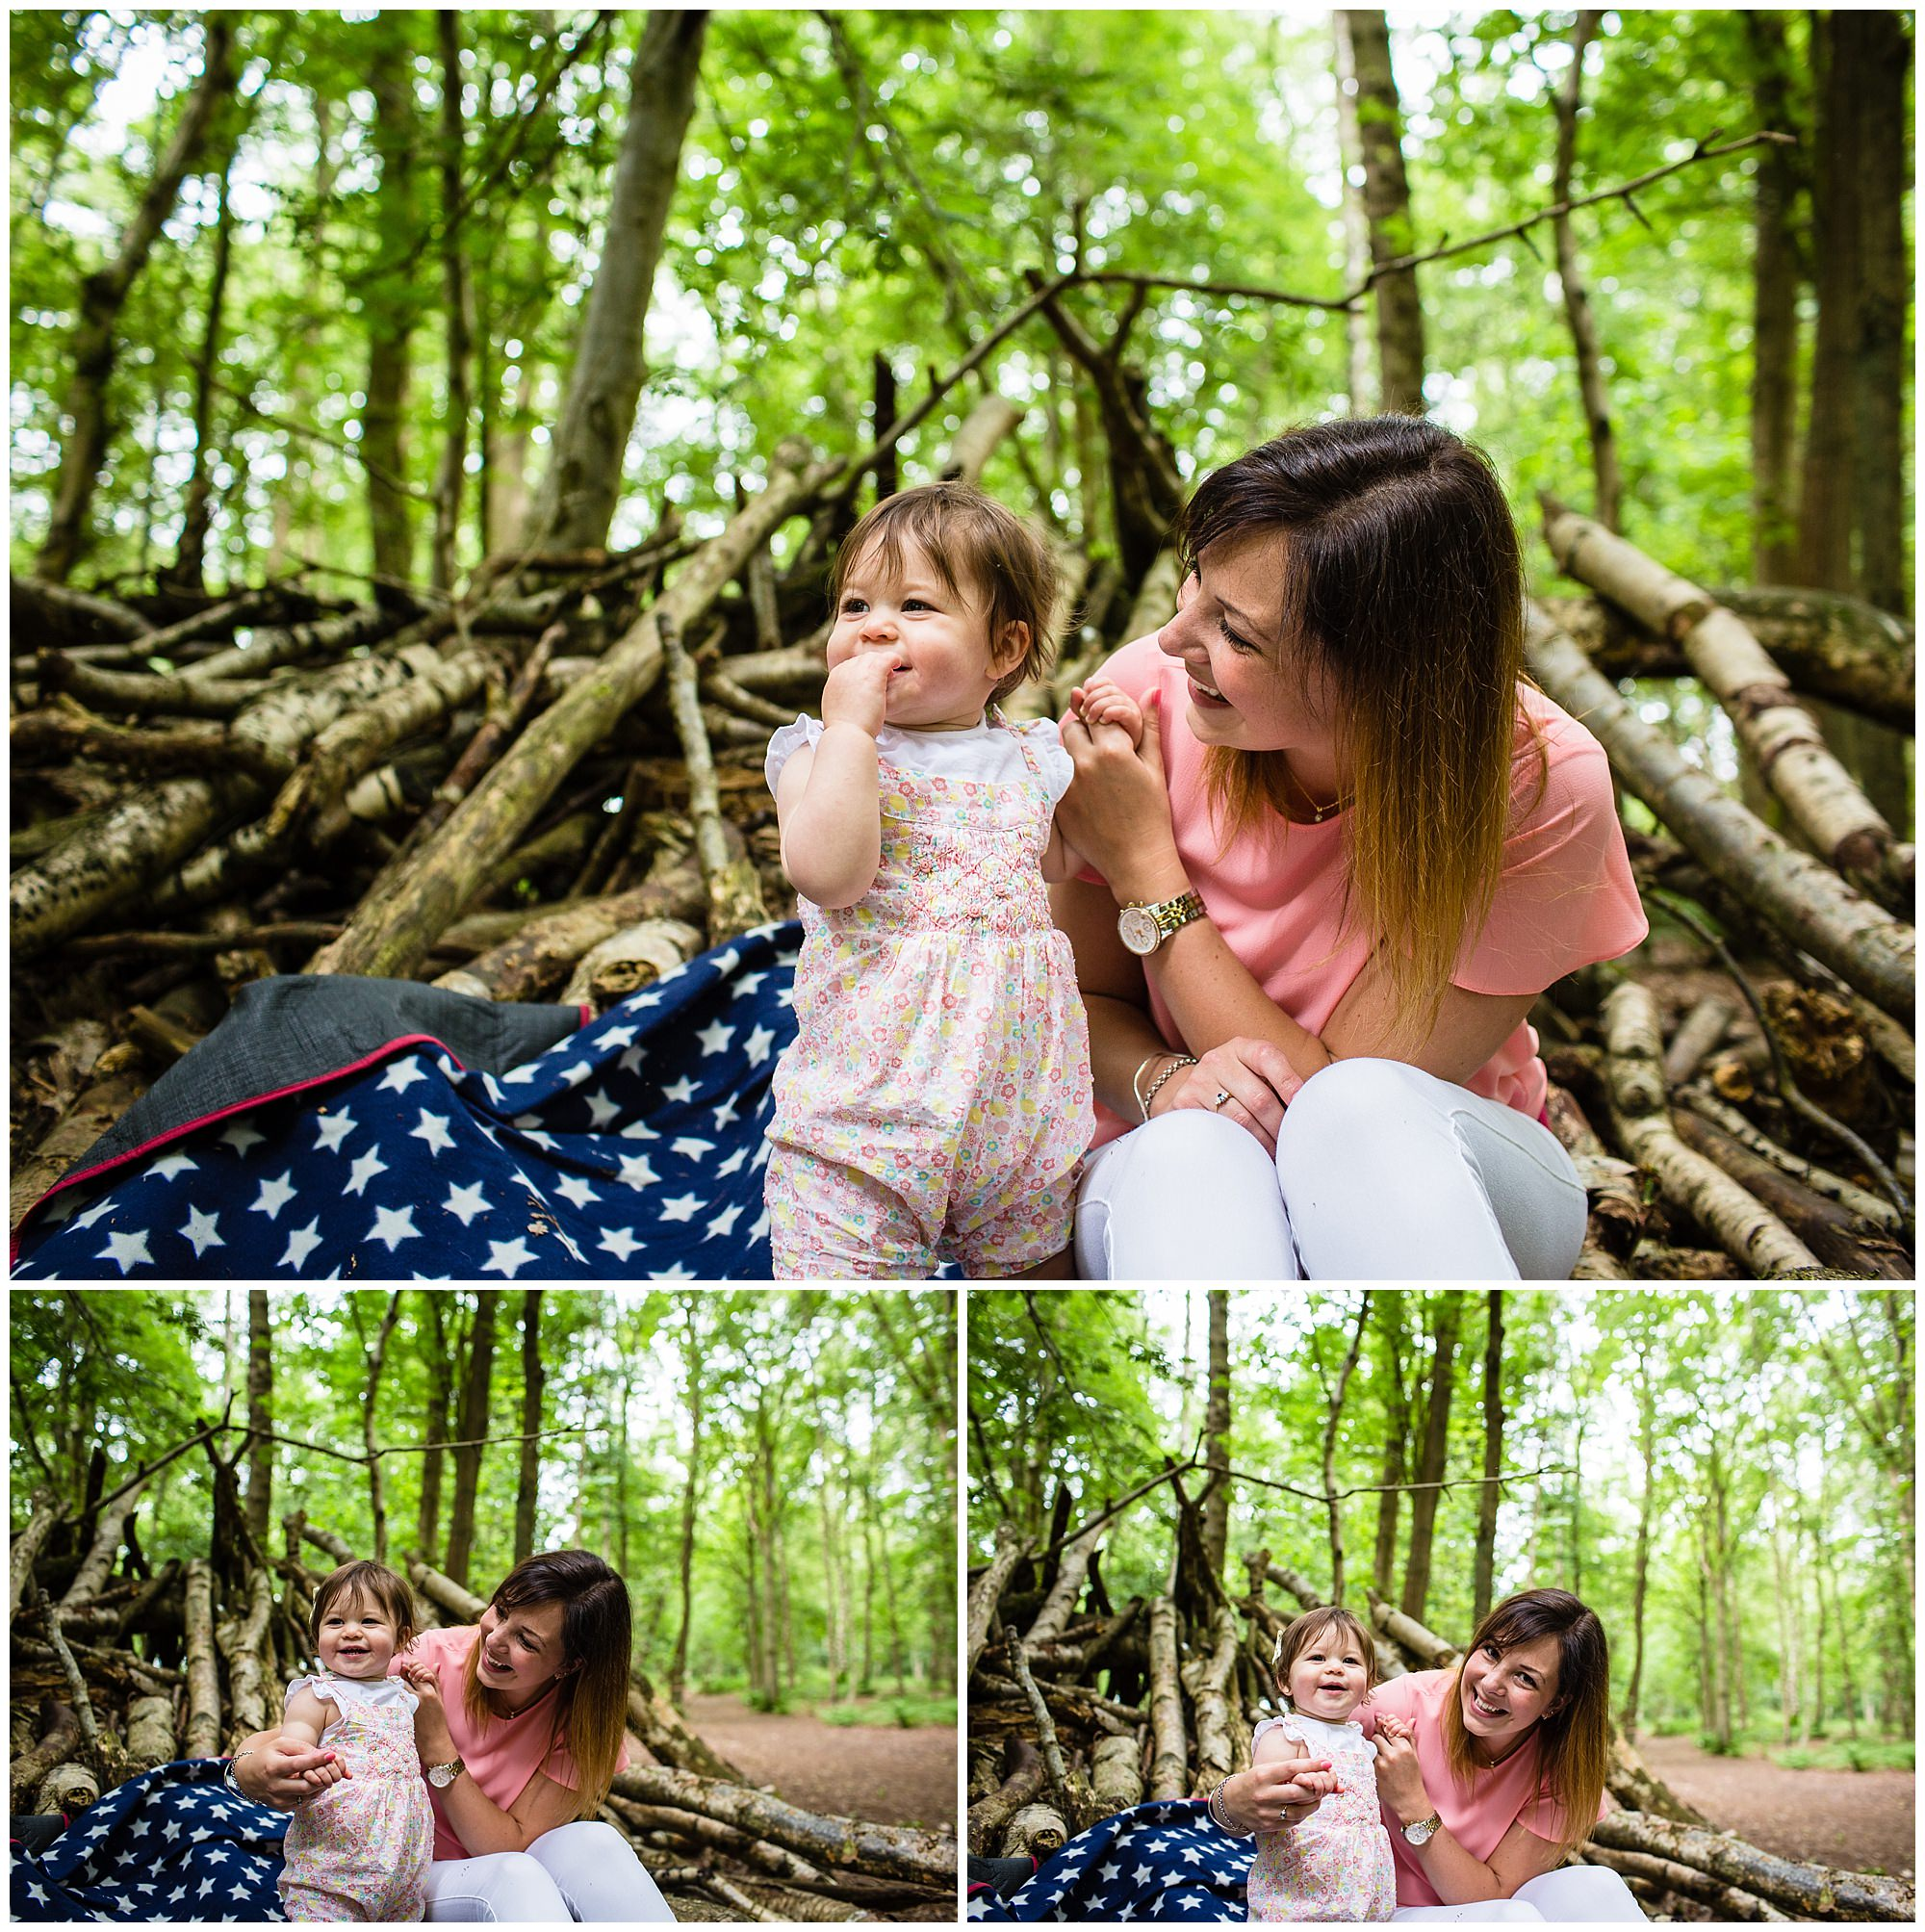 mum and one year old girl playing and laughing at dad being silly - shropshire family photographer